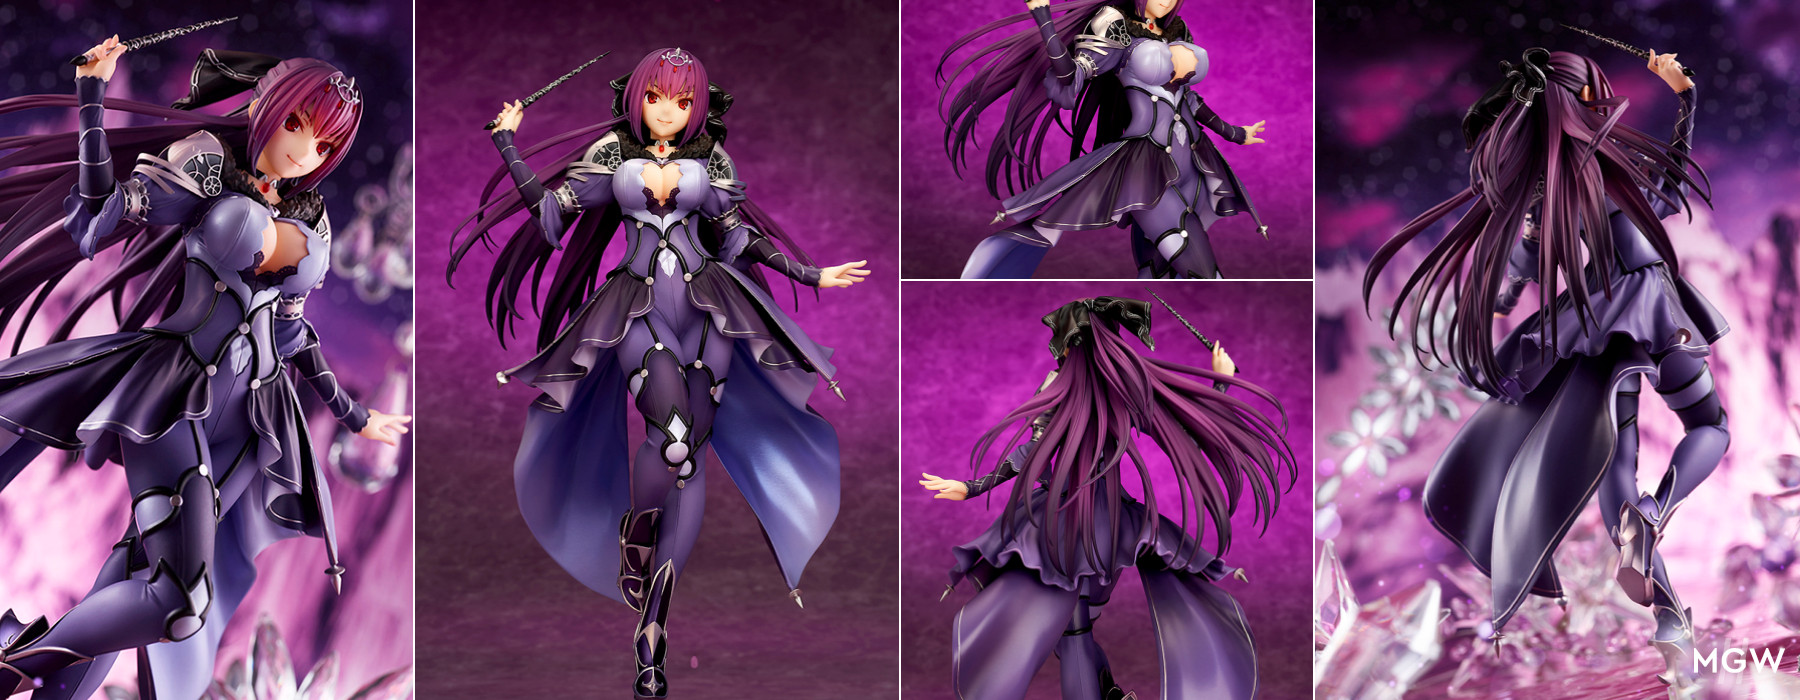 Caster Scathach Skadi Second Ascension by quesQ from Fate Grand Order MyGrailWatch Anime Figure Guide